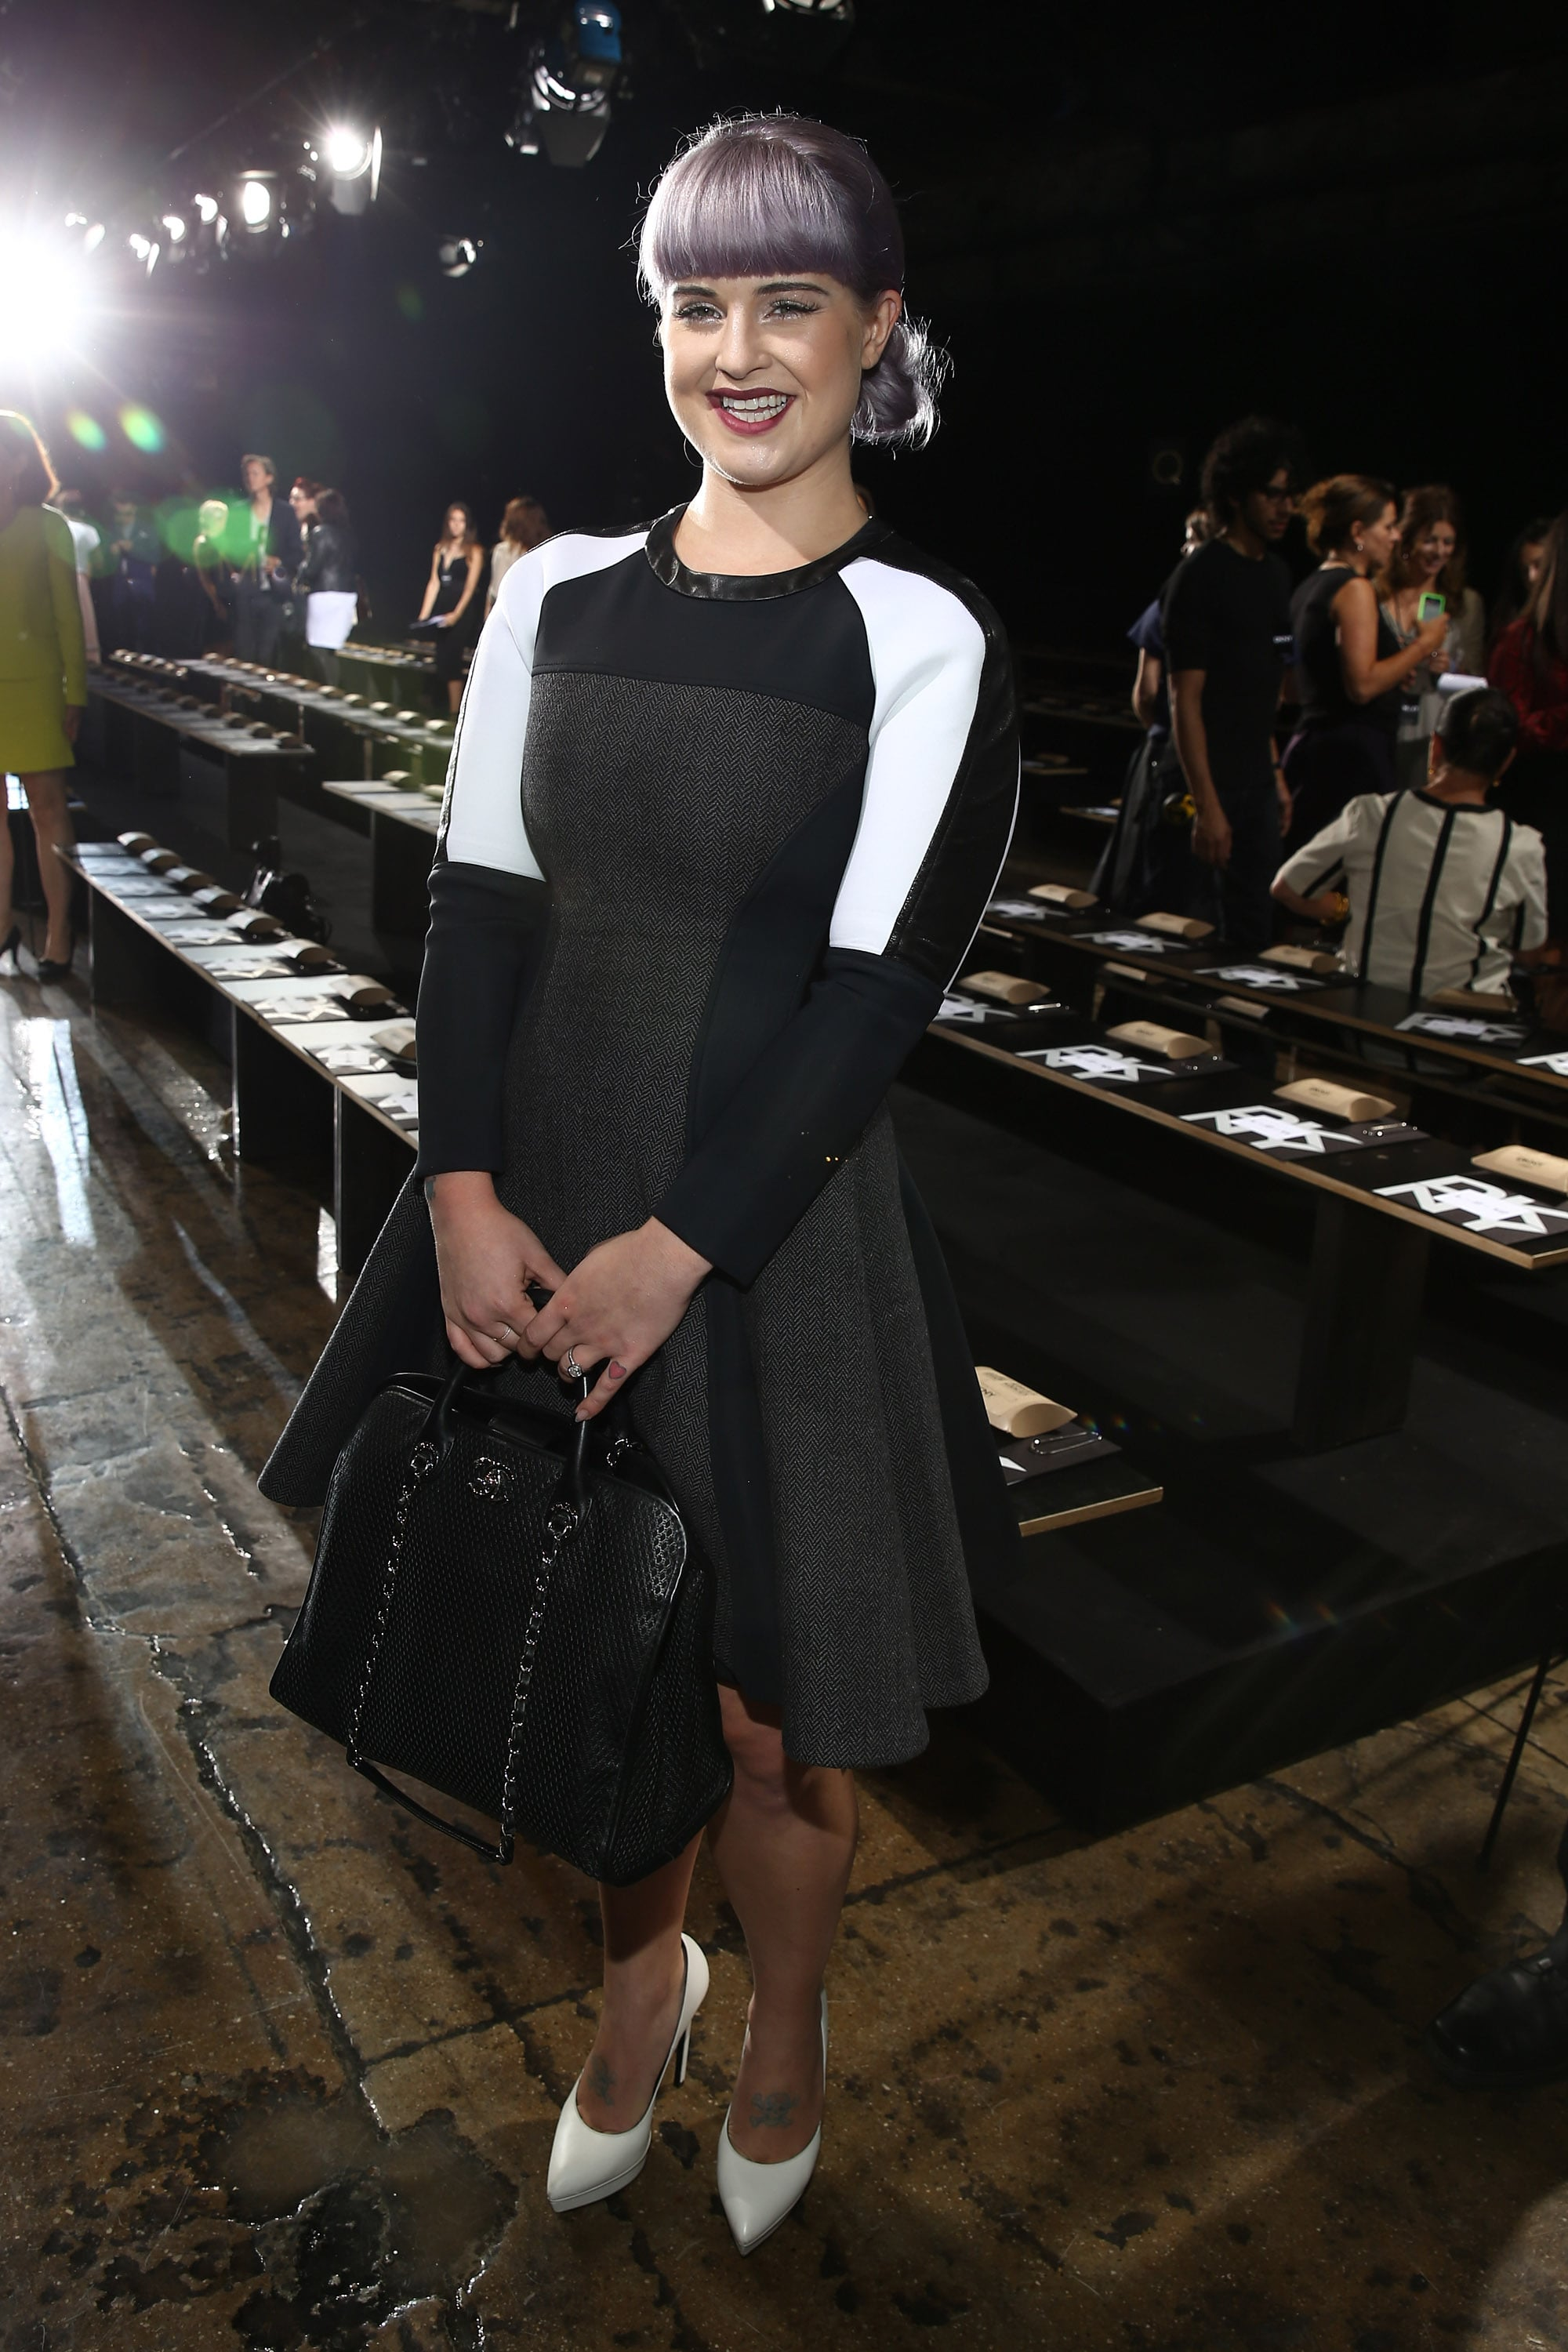 Kelly Osbourne smiled wide at DKNY in a colorblock dress and crisp white pumps.